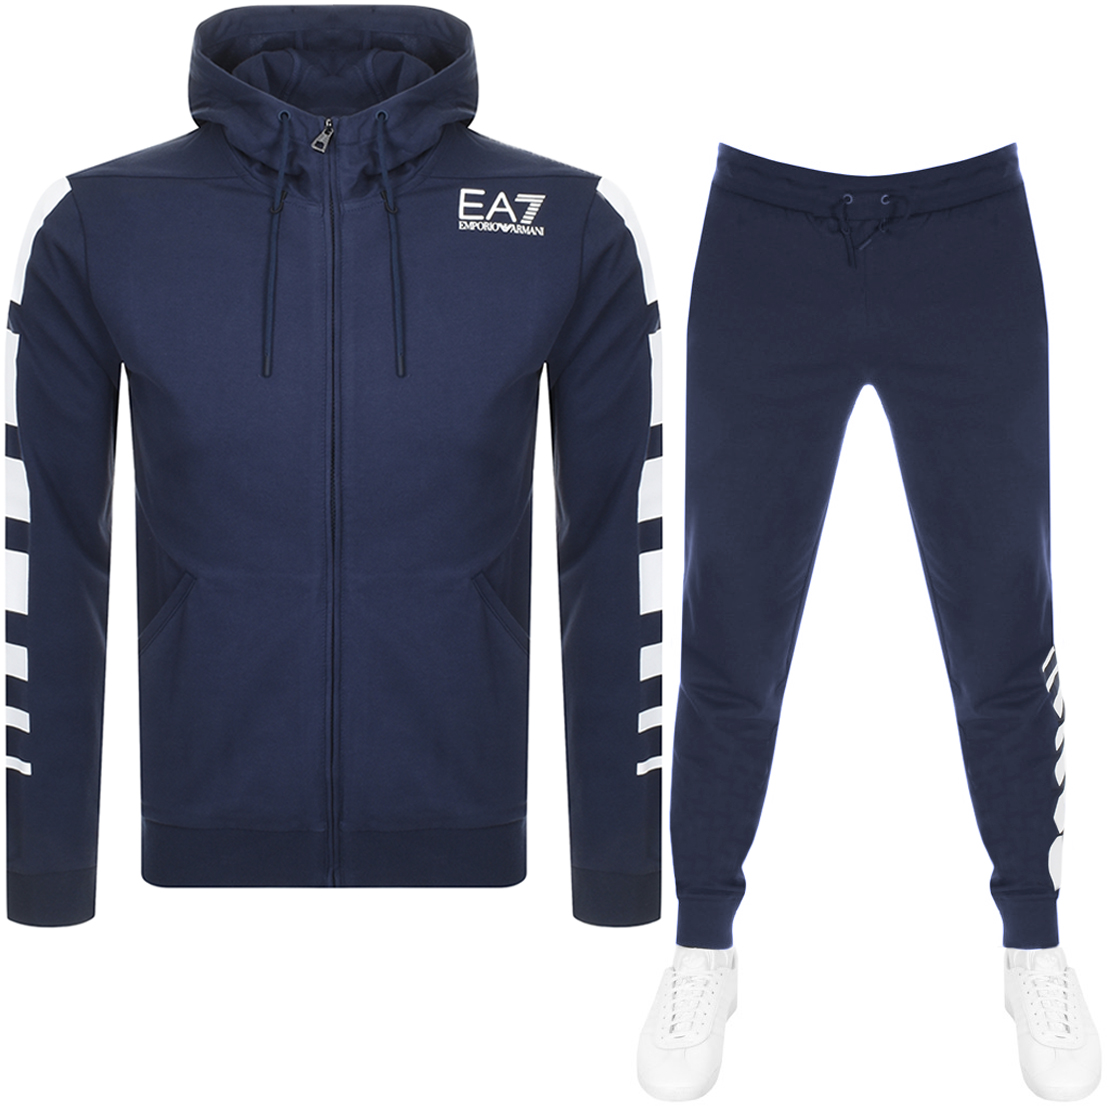 Main Product Image for EA7 Emporio Armani 7 Lines Tracksuit Navy